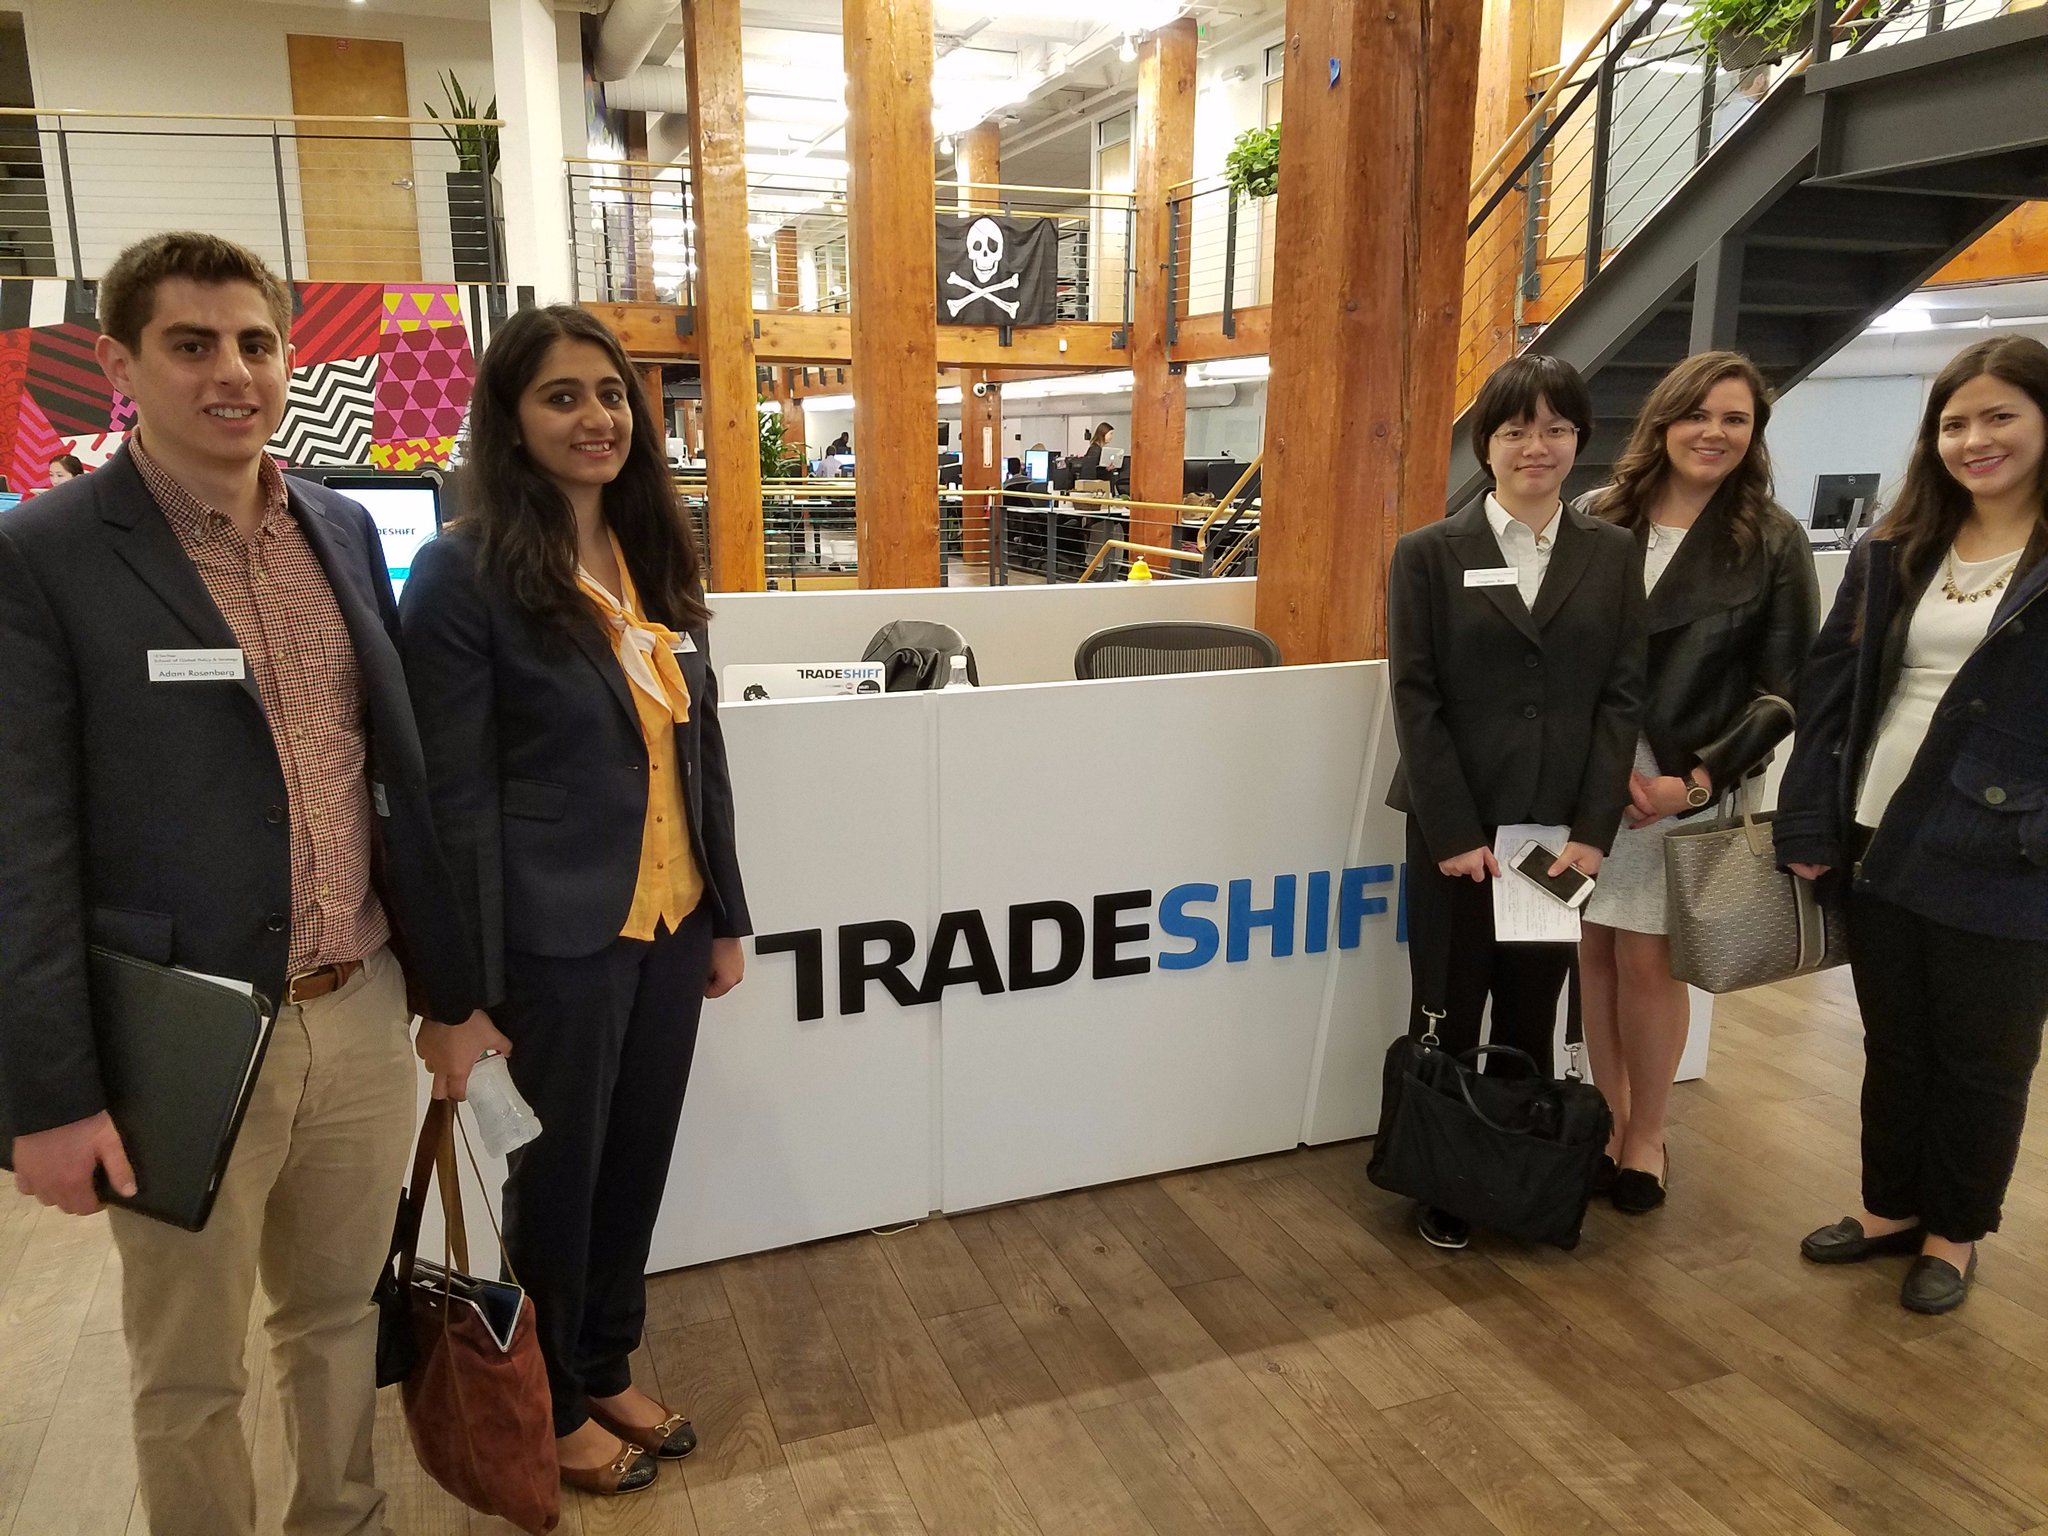 Meanwhile, other students wandered over to @tradeshift for a peek at the private sector. #SanFrancisco https://t.co/4OIrxuXwOl